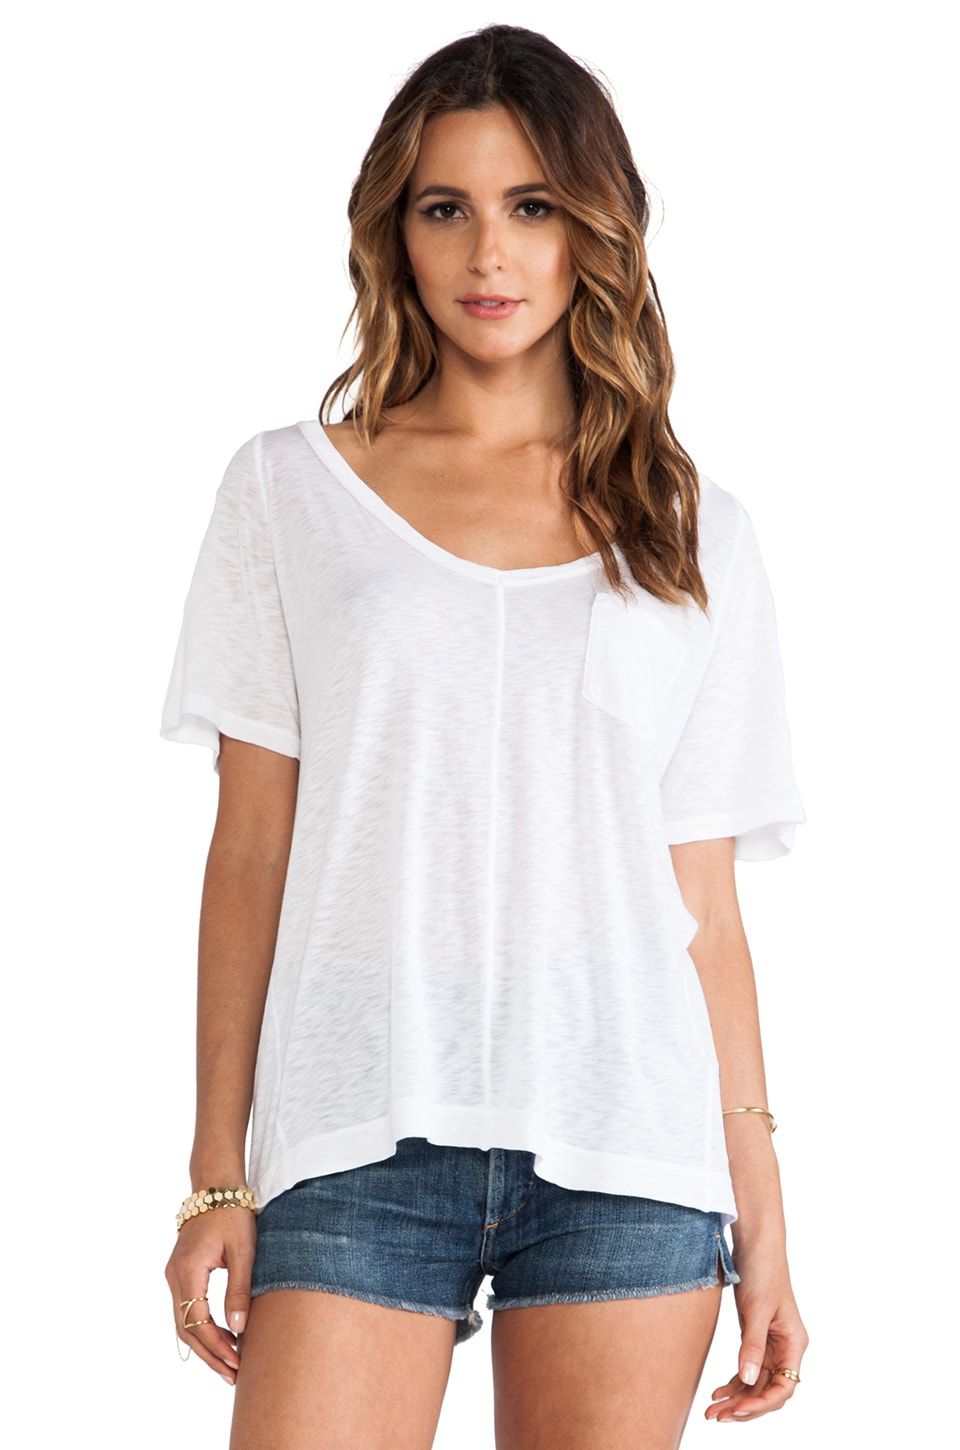 Splendid Slub Tee in White